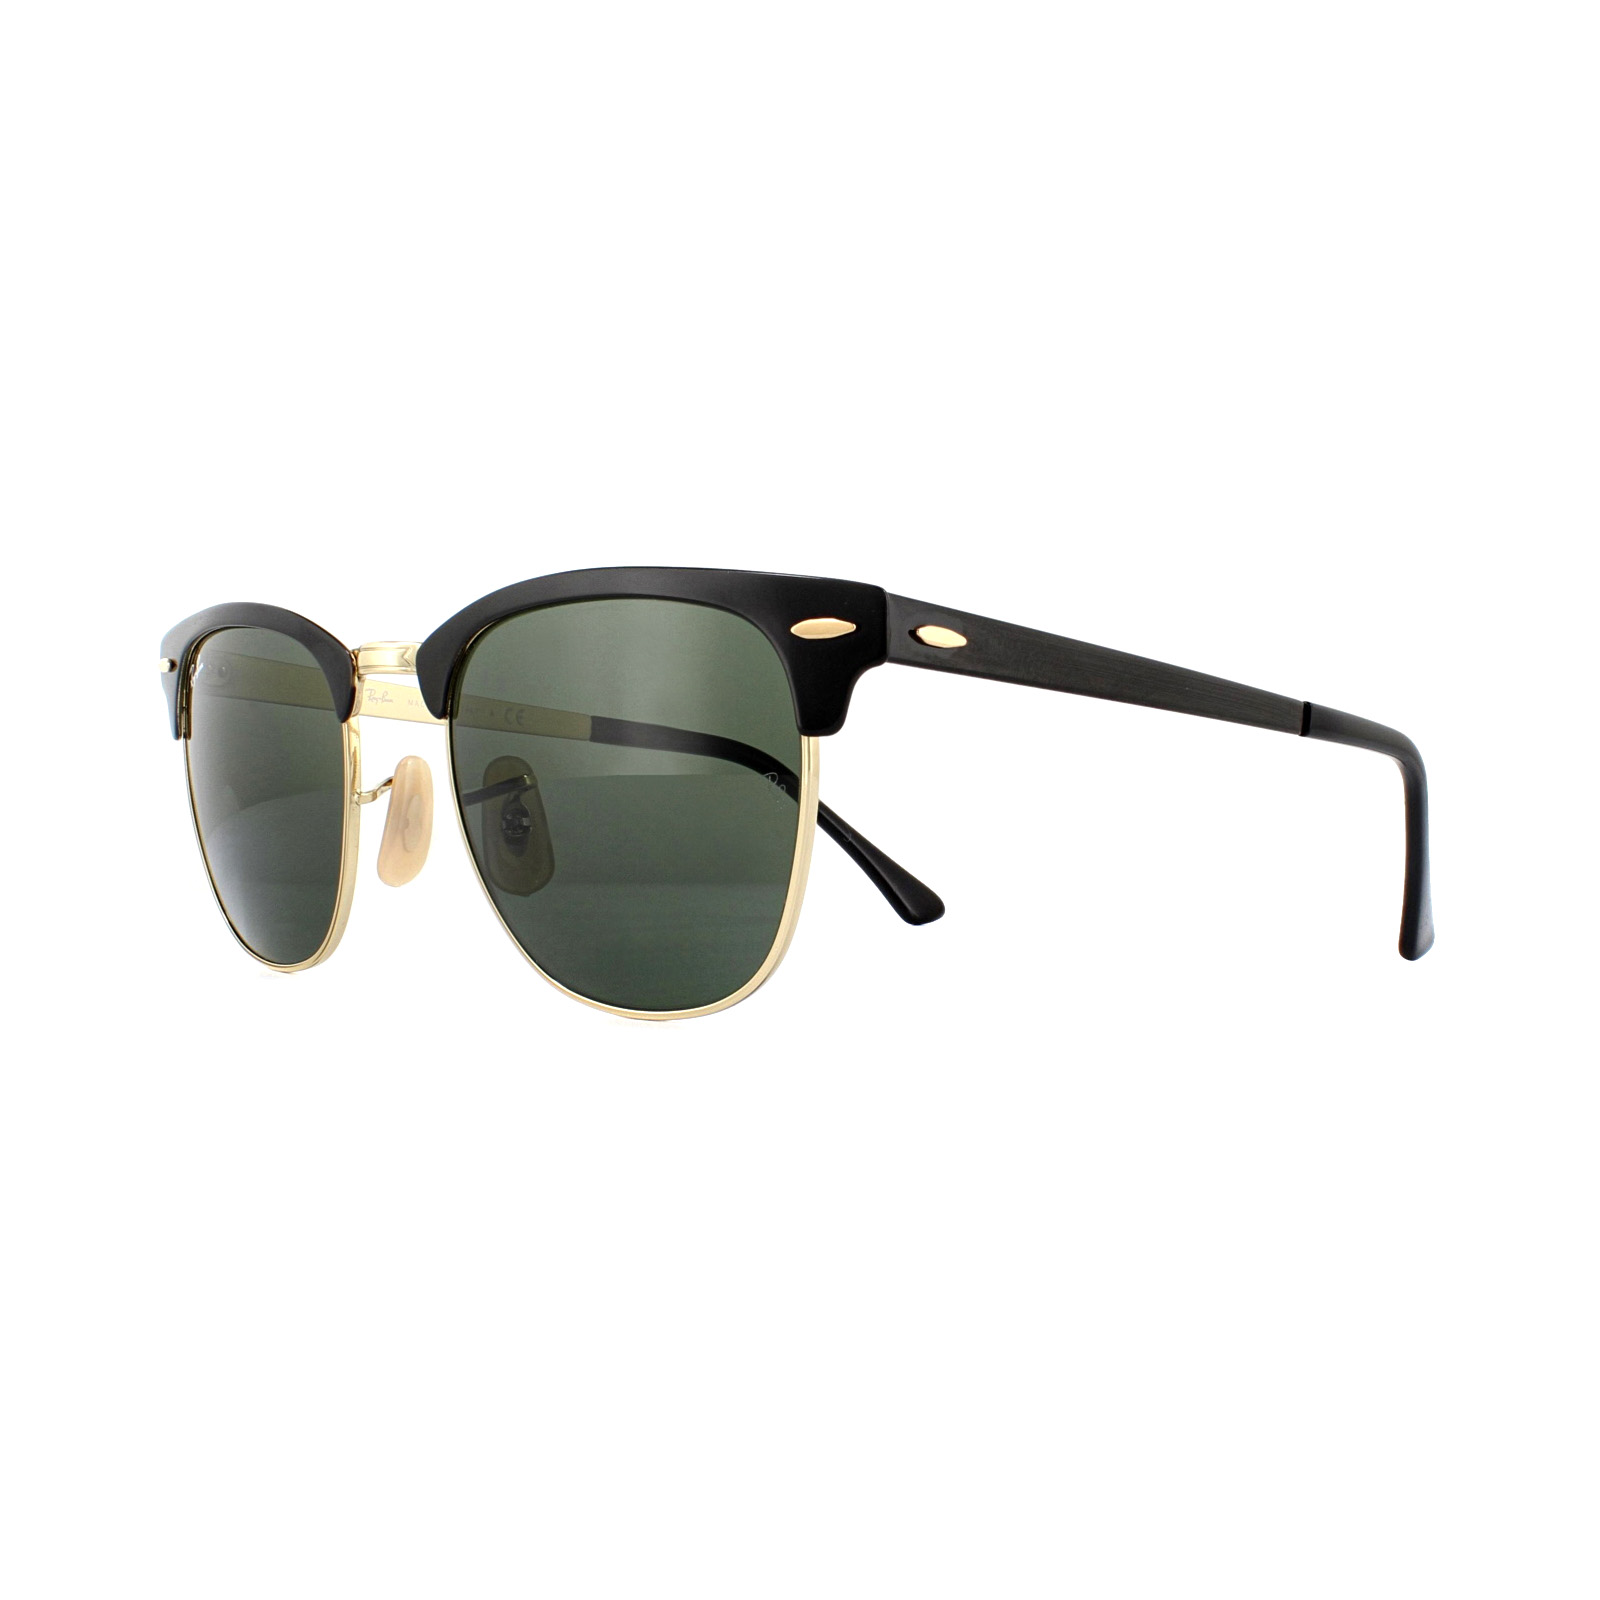 49c1516c204 Sentinel Ray-Ban Sunglasses Clubmaster Metal RB3716 187 Gold Top On Black  Green